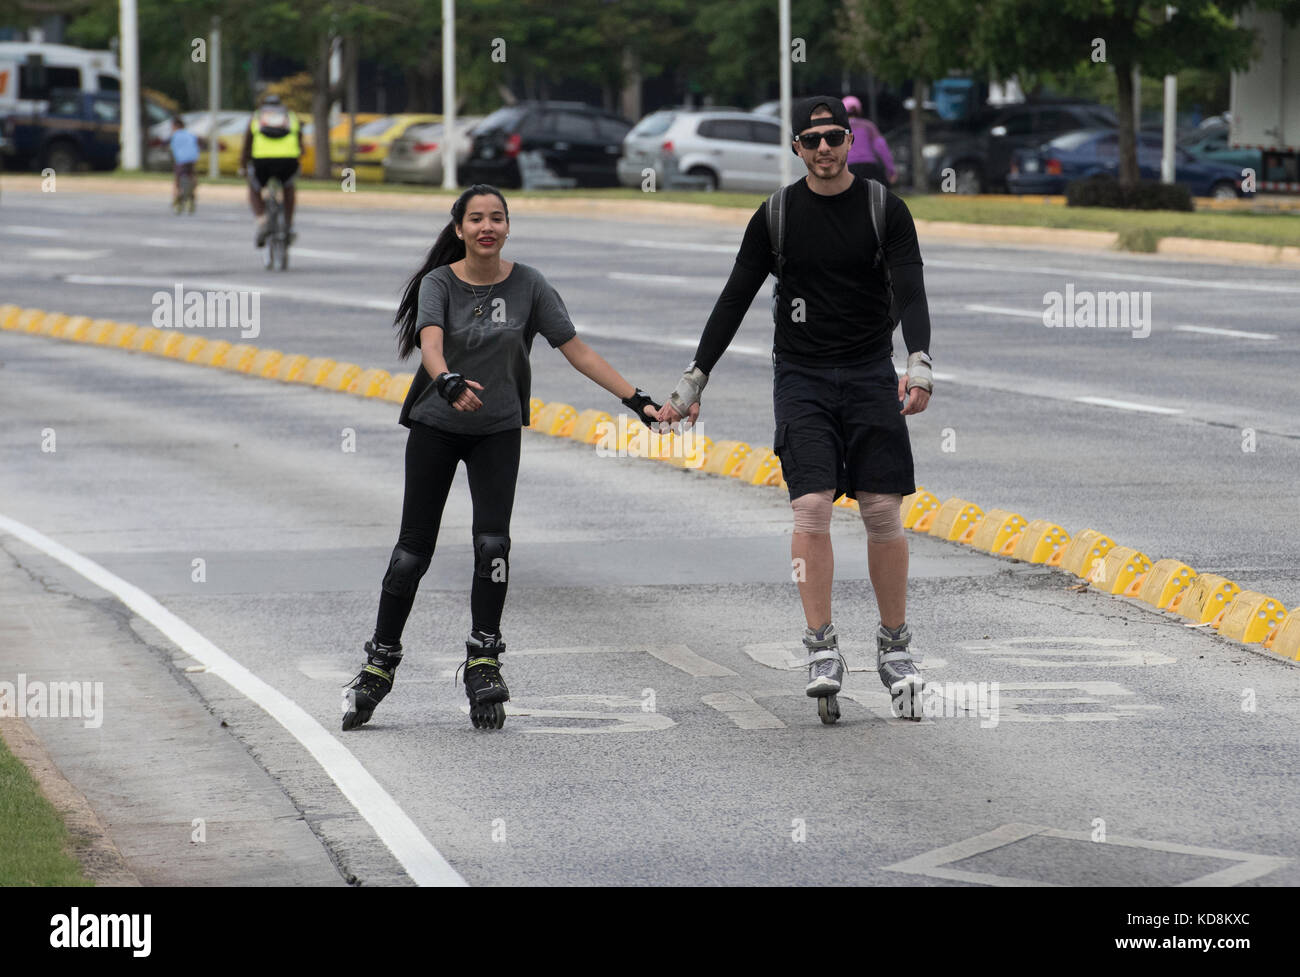 Couple roller blading in the traffic free area on Sunday in Panama City - Stock Image